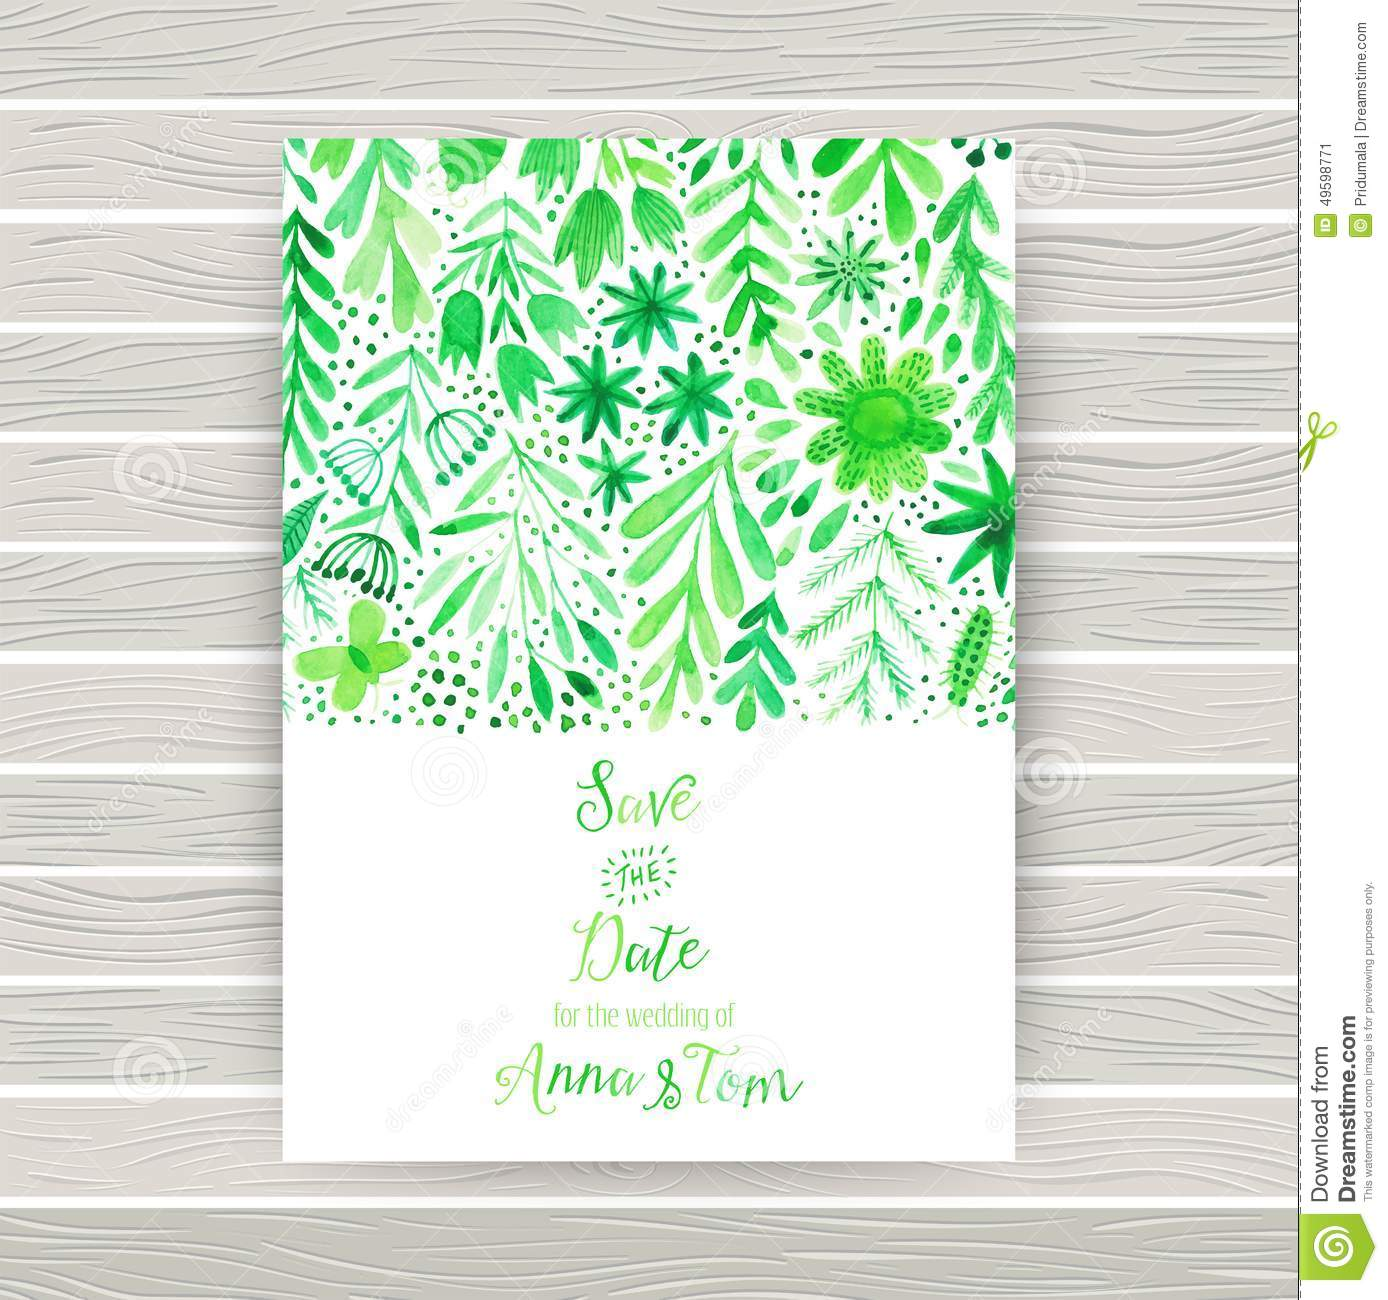 Vector Watercolor Invitation Card With Flowers And Plants Floral